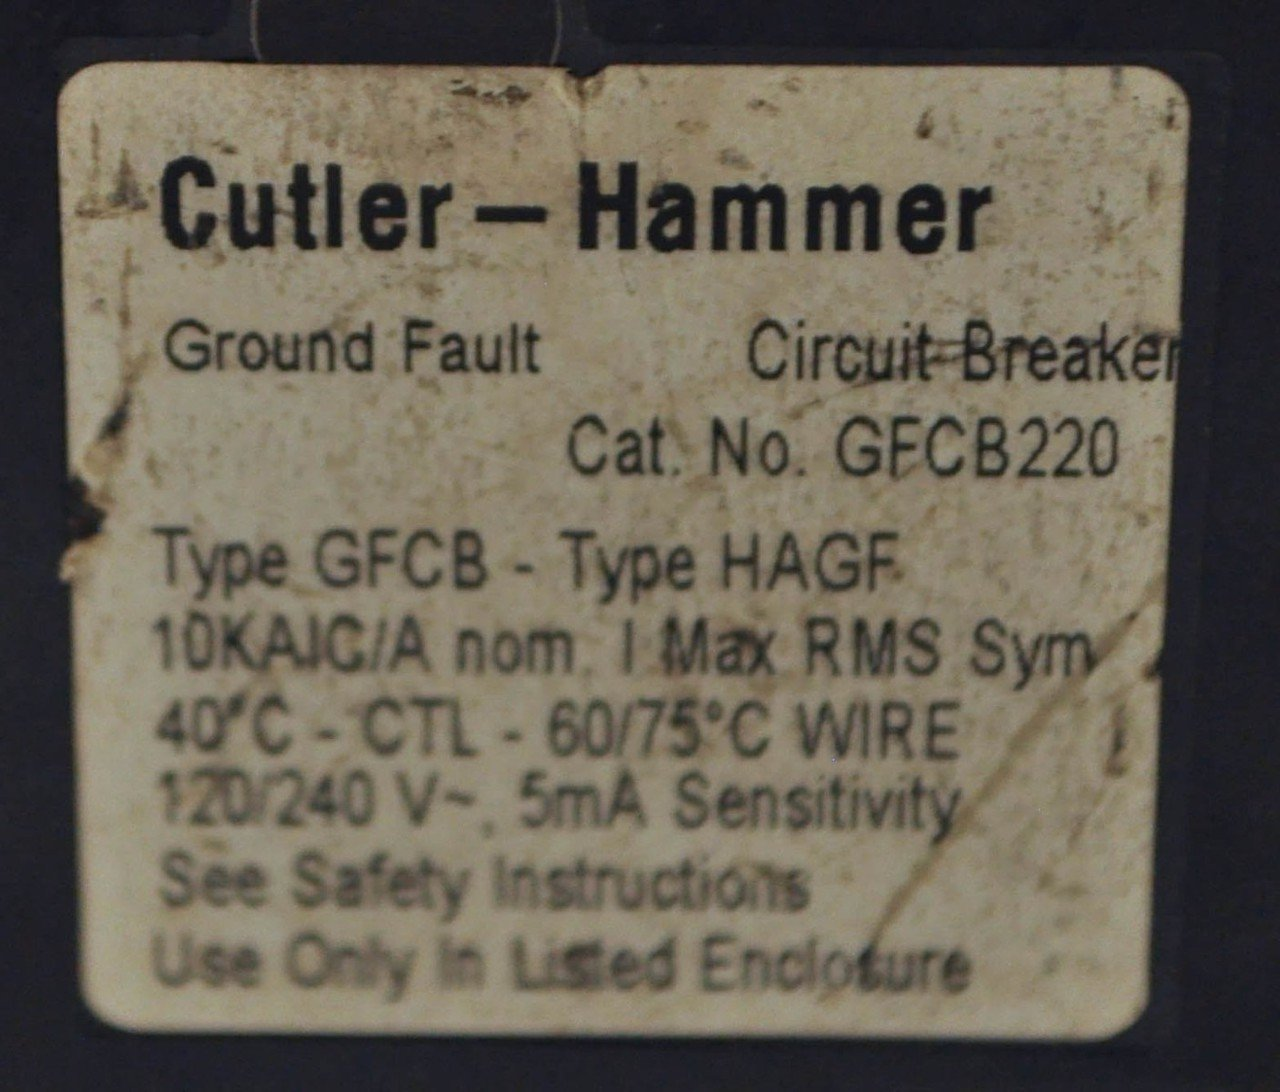 Cutler Hammer Gfcb220 20 Amp 2 Pole Gfci Circuit Breaker Plug In 120 Eaton Type Br Singlepole Ground Fault 240v For Series Panel Does Not Fit A Ch